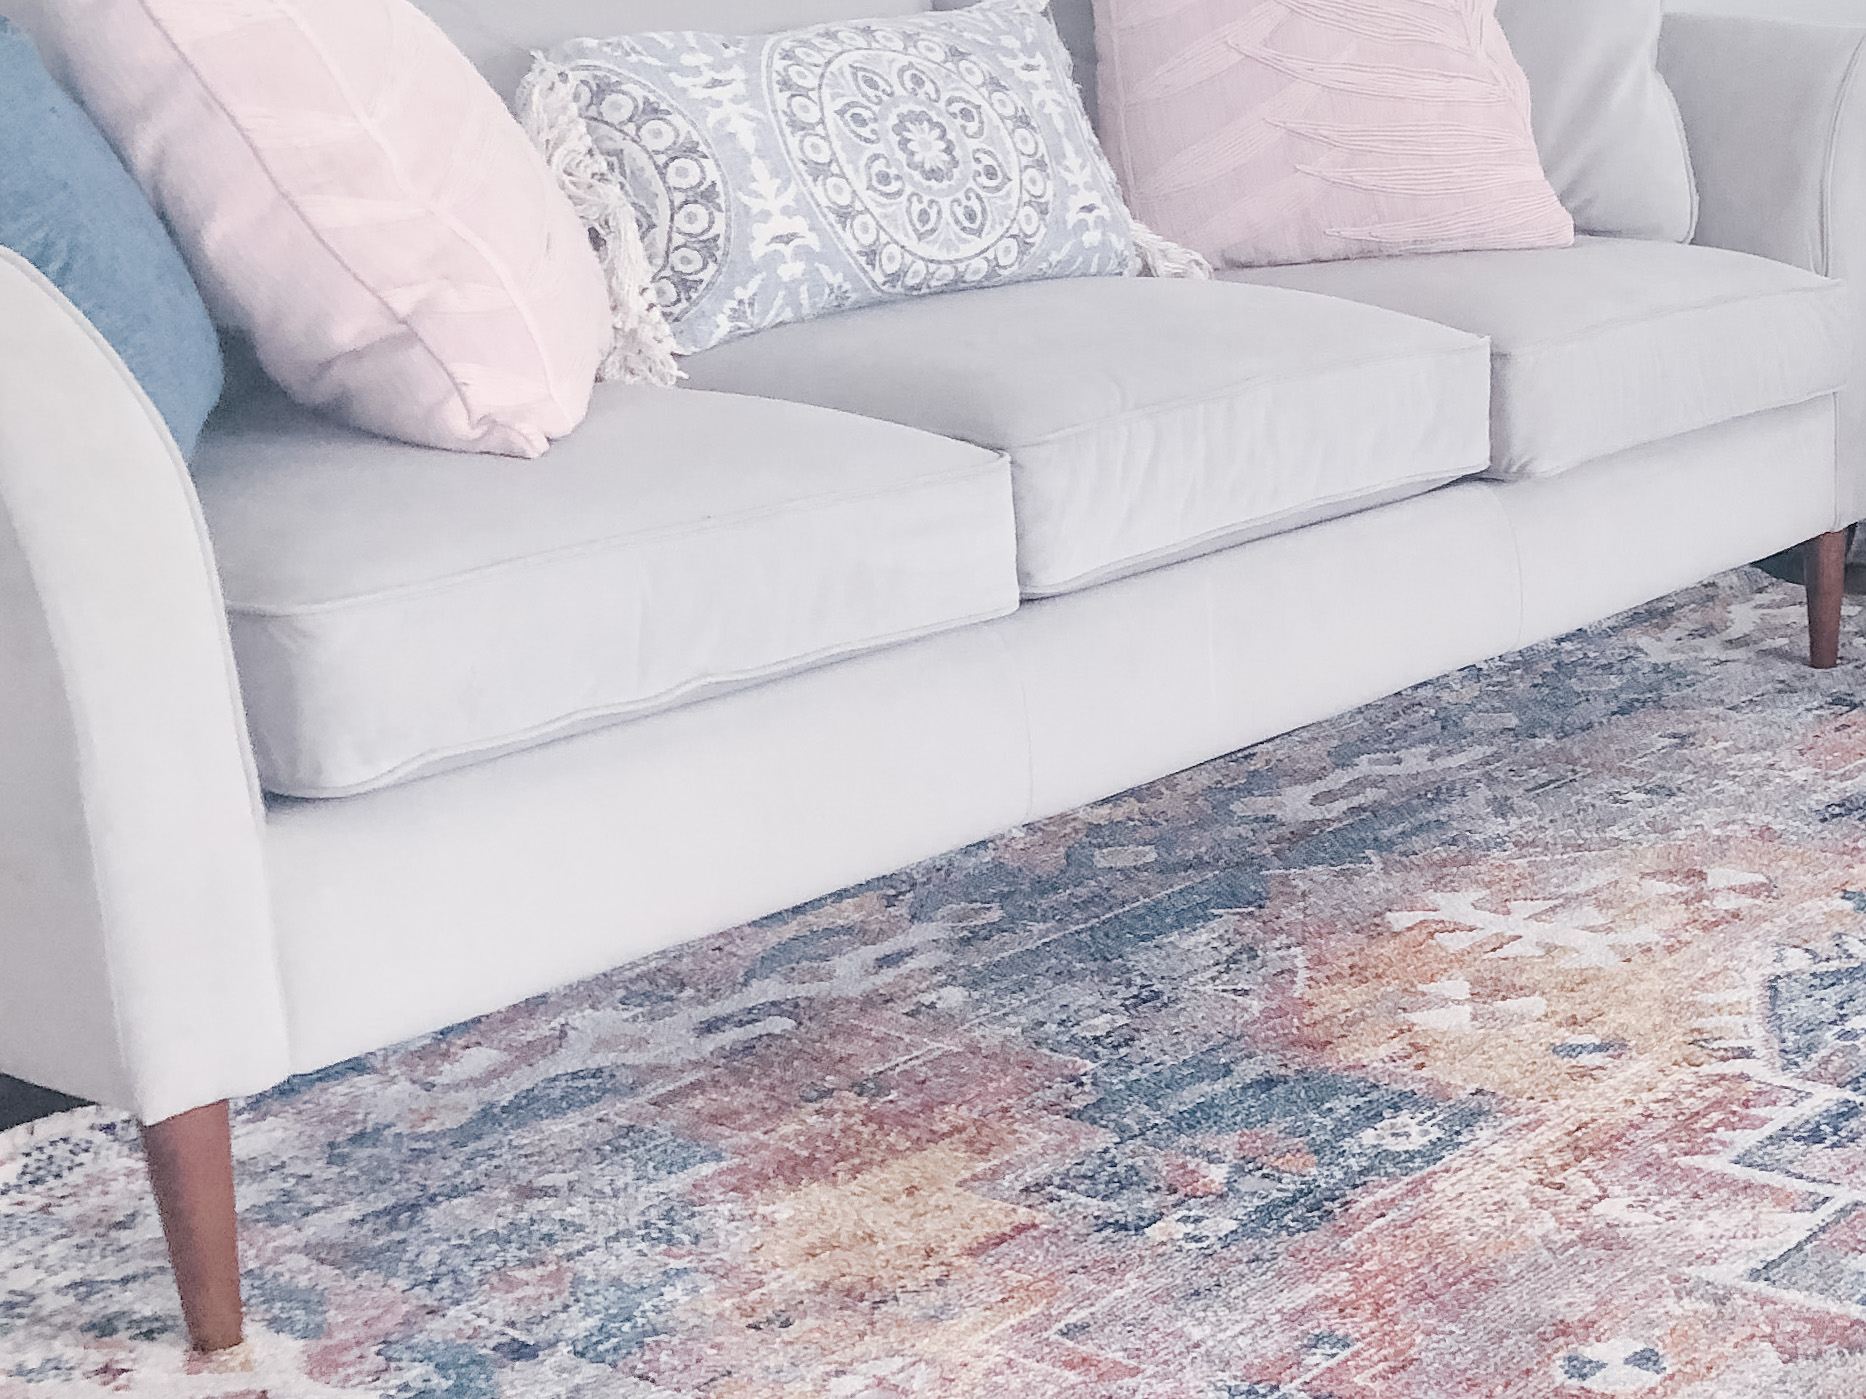 light couch with pastel pillows on top of a pastel printed rug